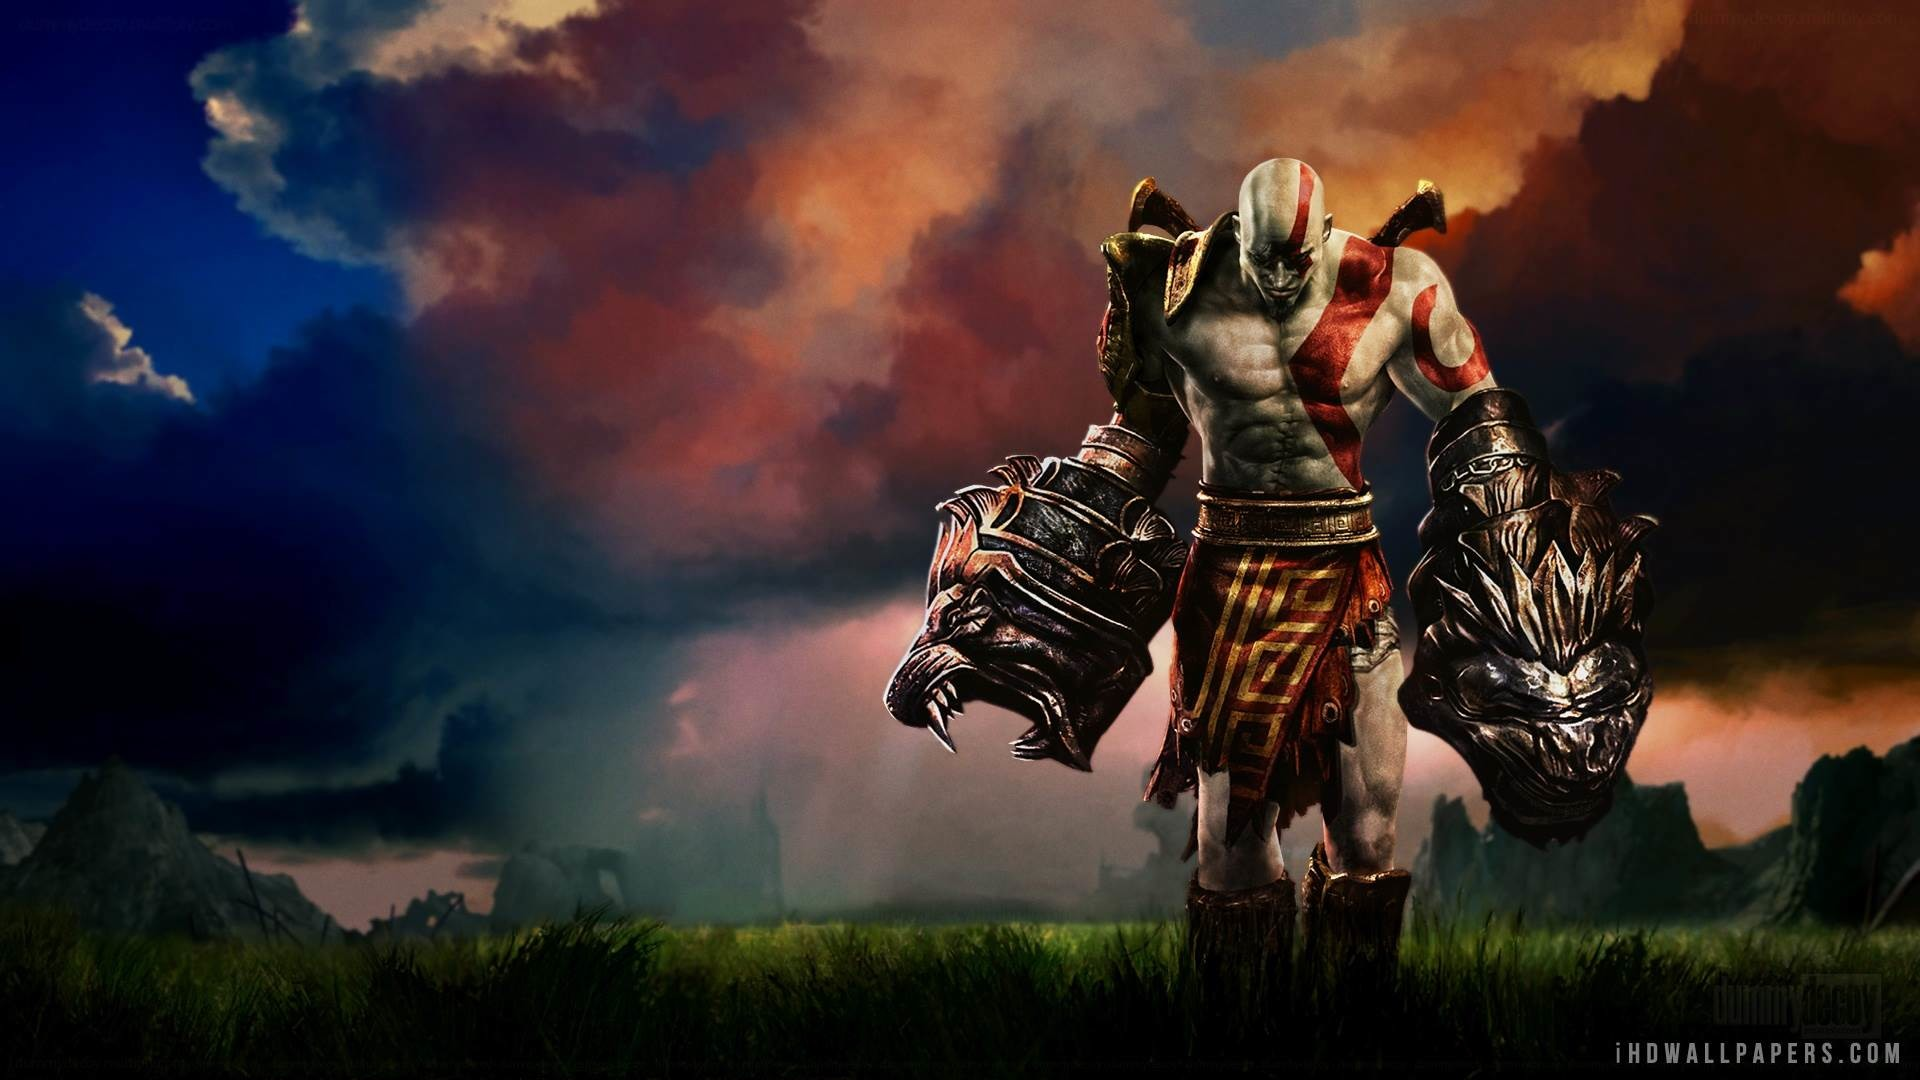 Kratos Wallpapers HD Wallpaper 1920×1080 Kratos HD Wallpapers   Adorable  Wallpapers